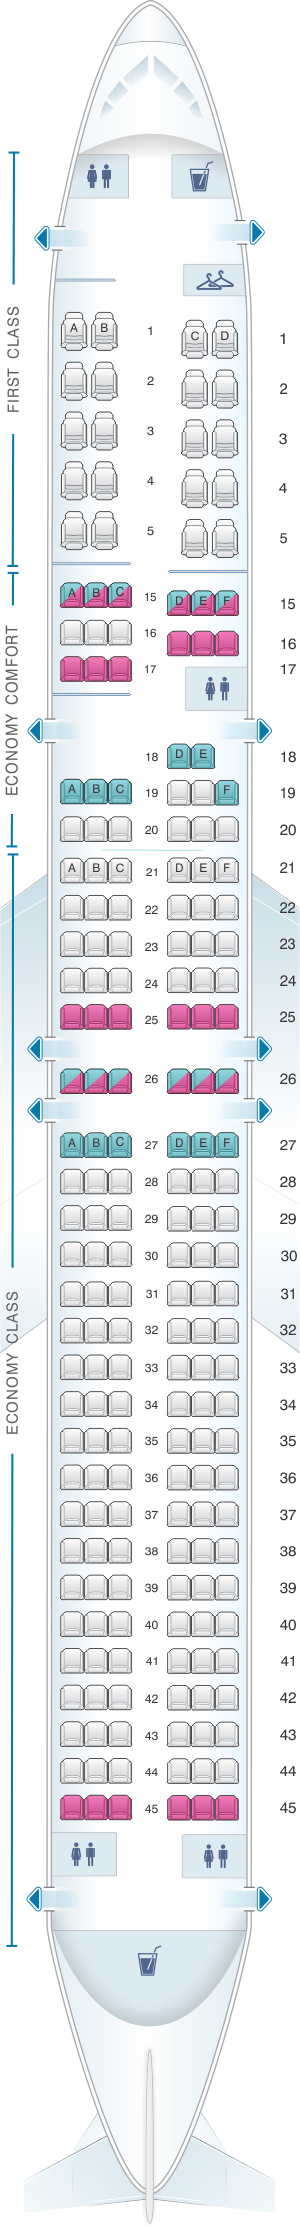 Seat map for Delta Air Lines Boeing B757 200 (75D)